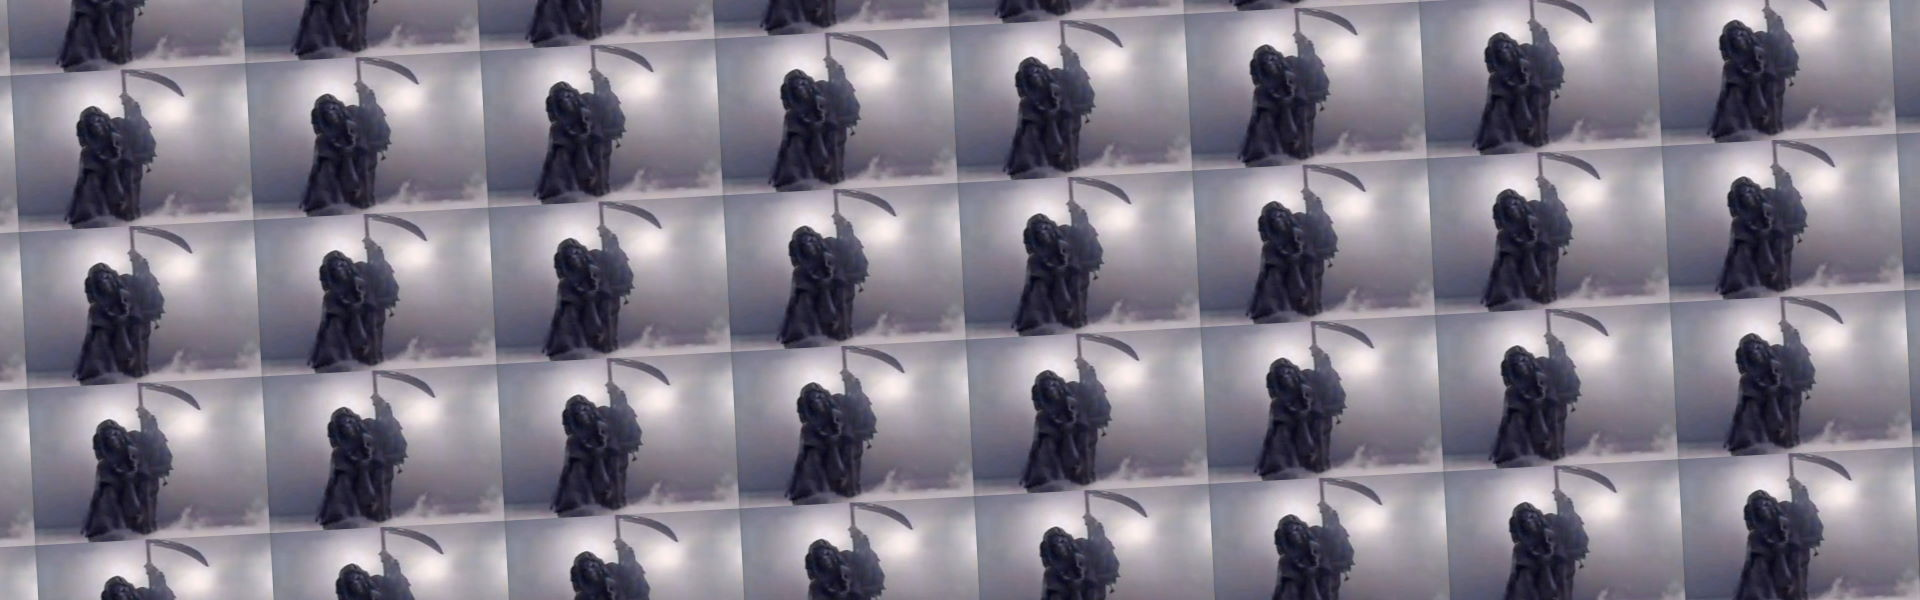 [Grim Reaper] / Siimon Reynolds (Canberra, ACT : National Advisory Committee on AIDS (NACAIDS), 1987), Video Collection